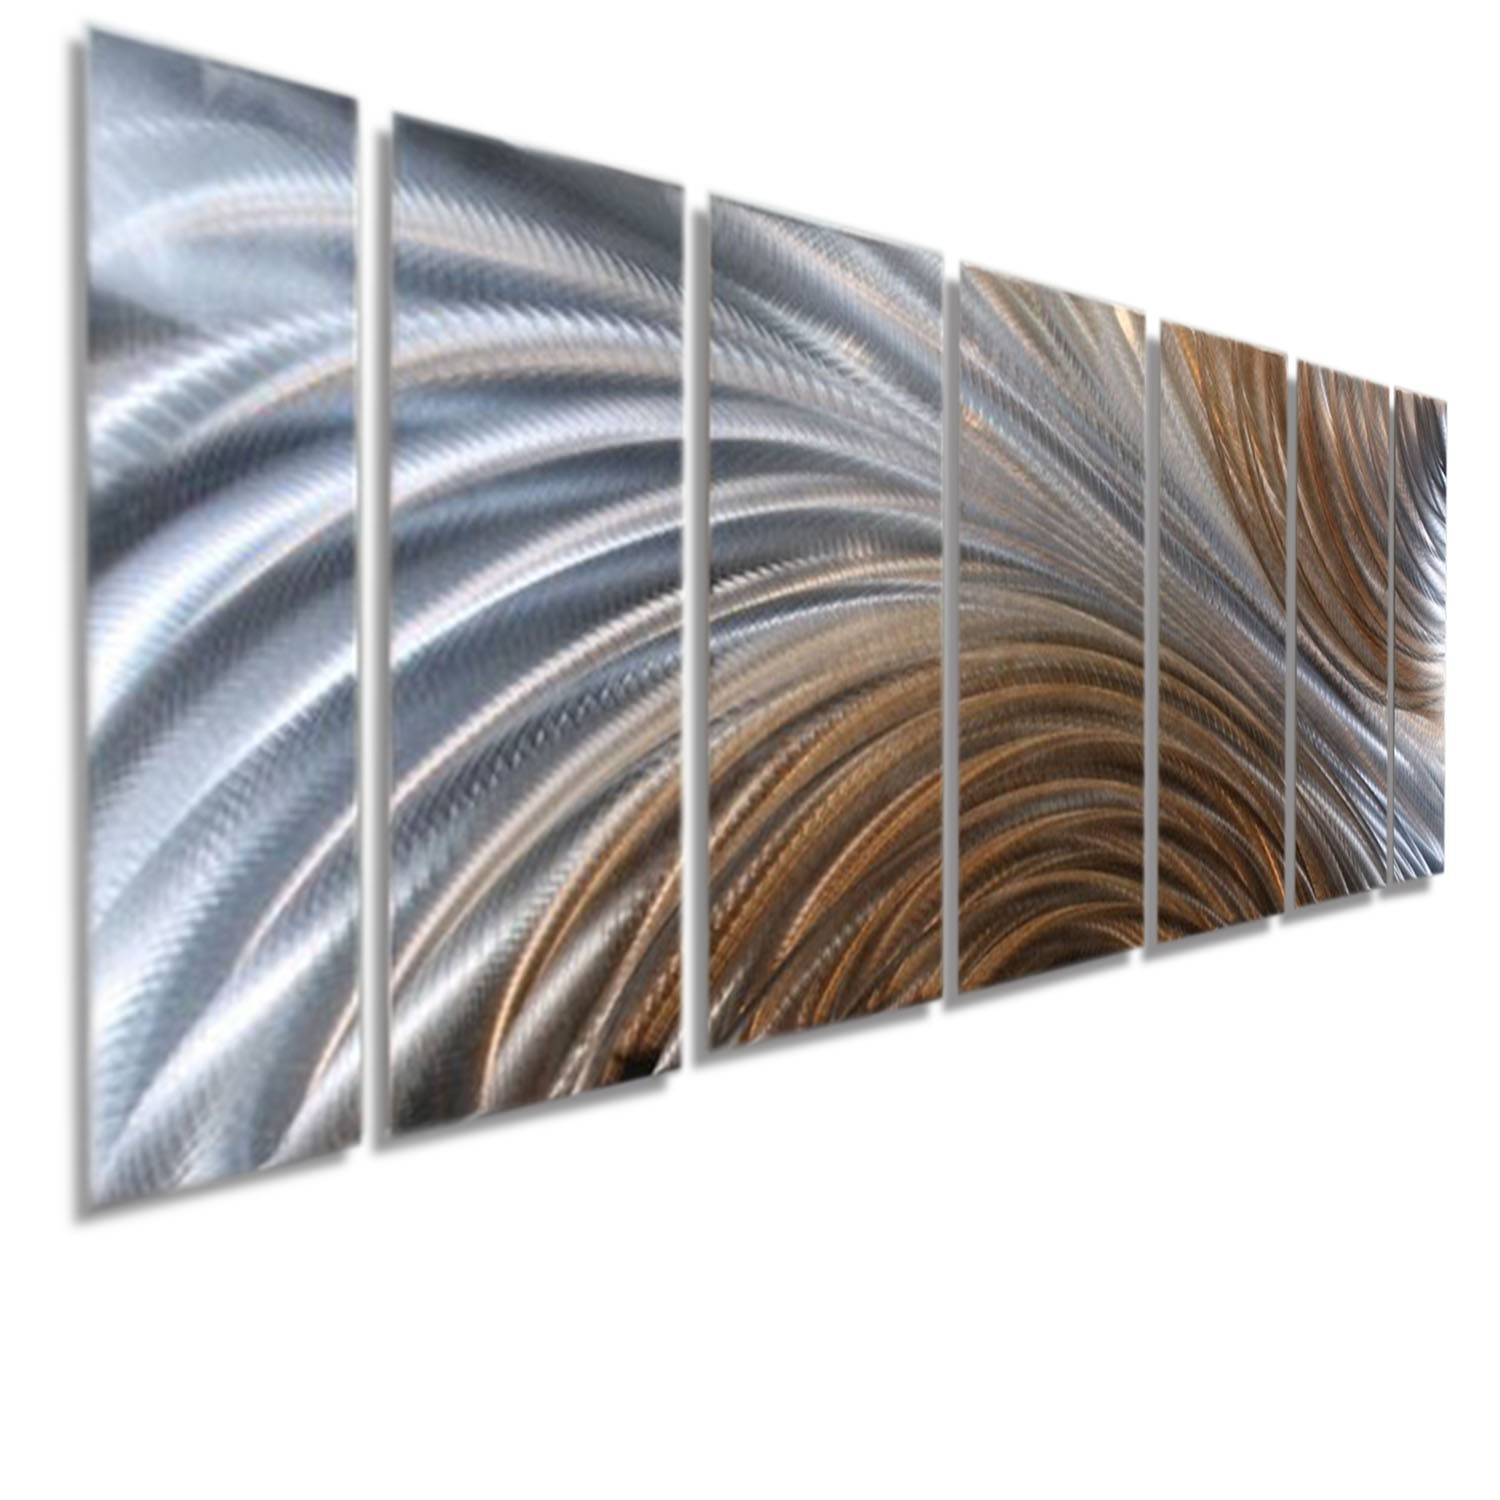 Amber Ascension  Silver & Copper Abstract Metal Wall Artjon Pertaining To 2017 Metal Wall Art (View 2 of 30)